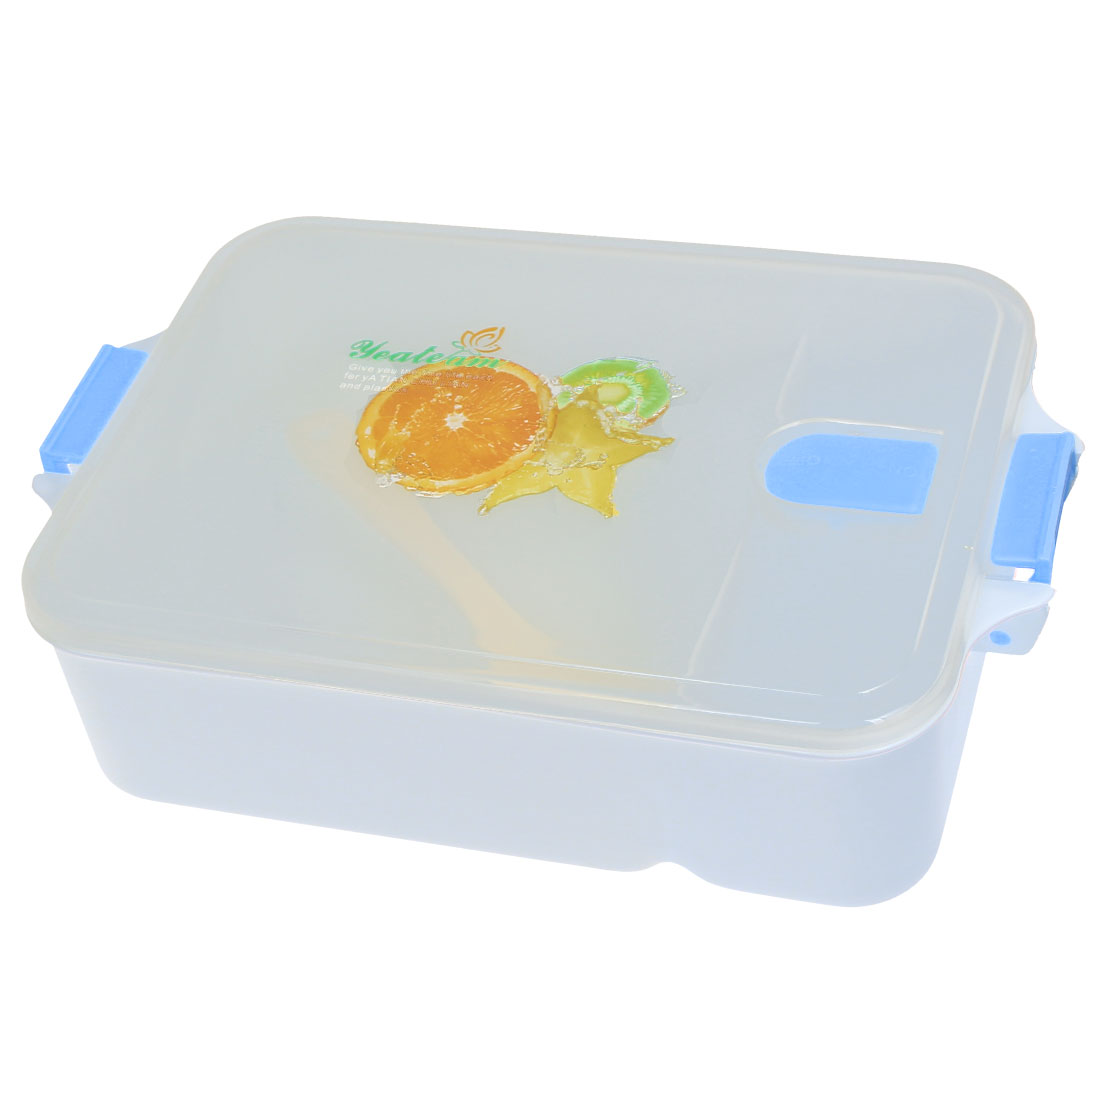 Picnic Fruits Print Plastic Lunch Box Food Storage Container Light Blue w Spoon